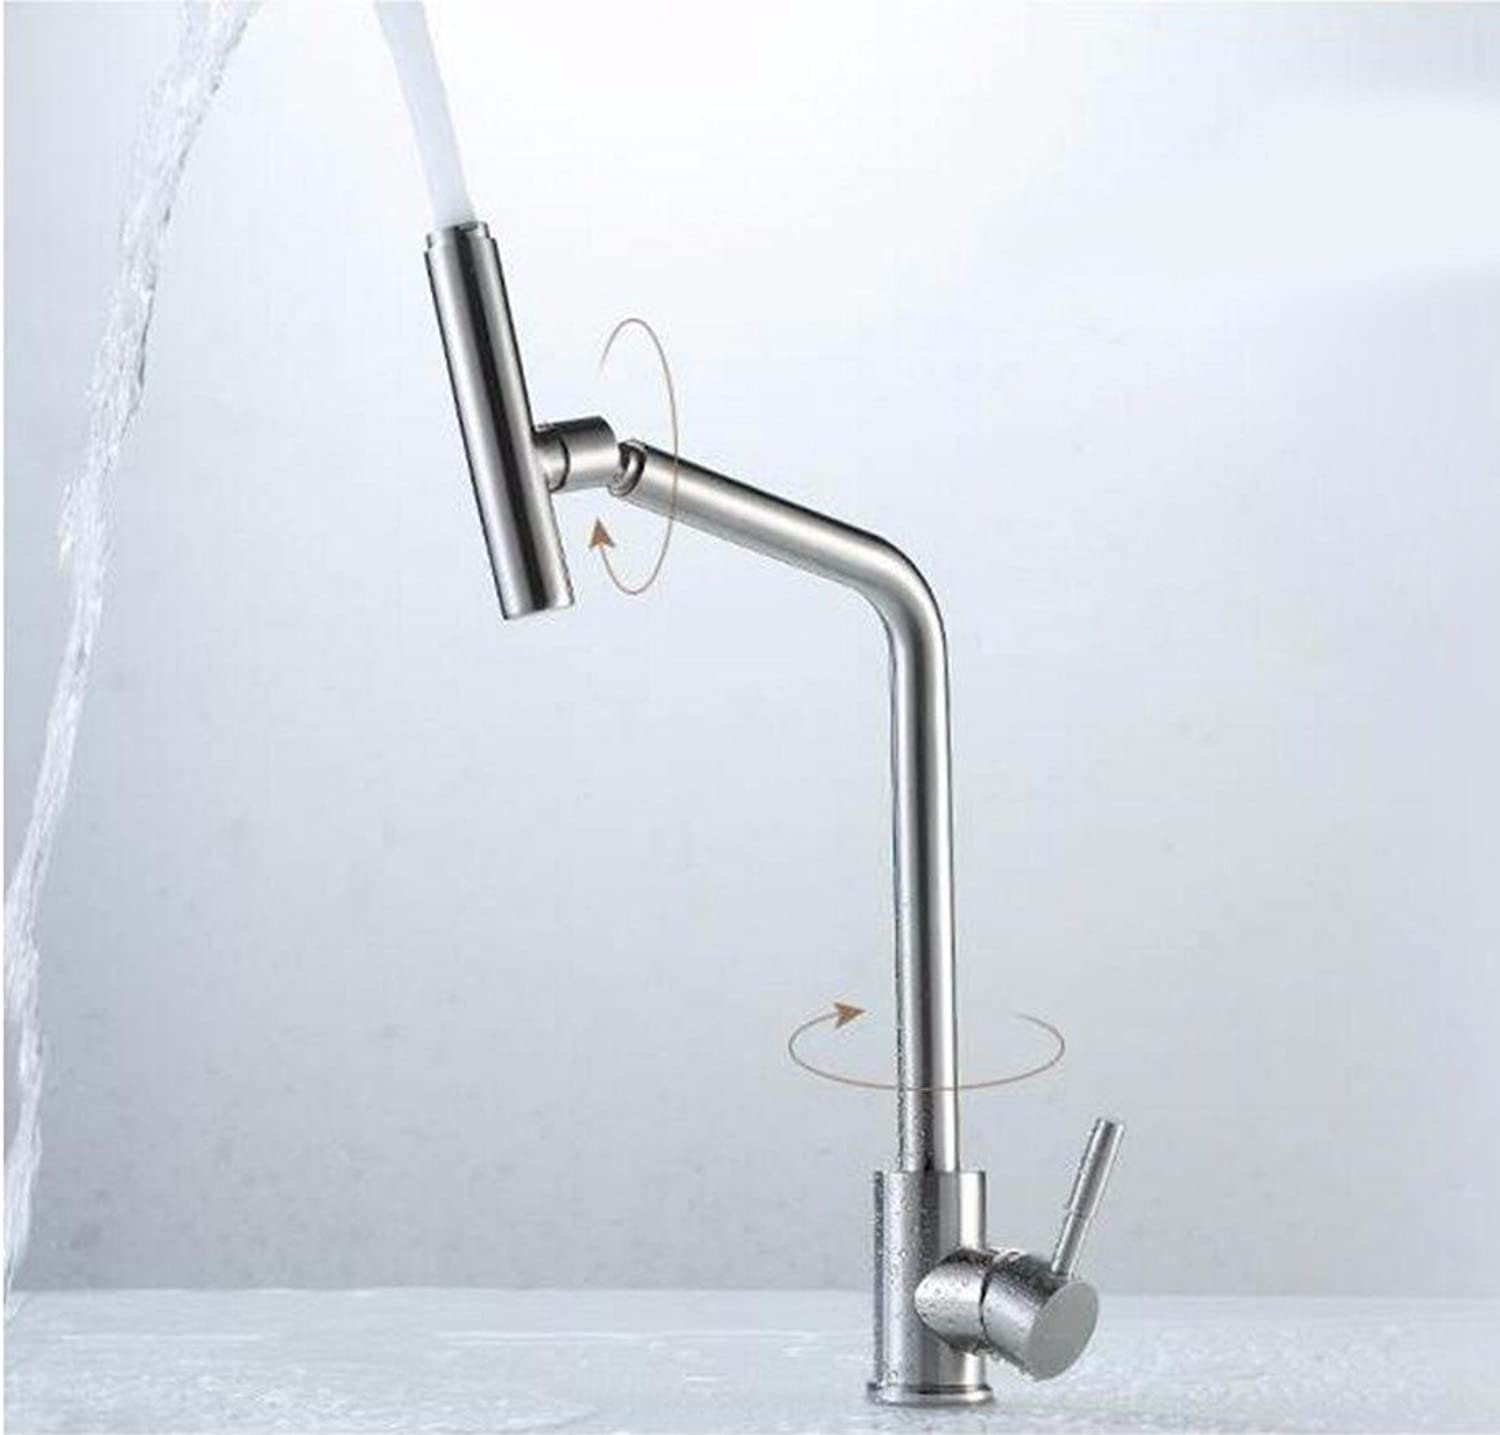 Commercial Single Lever Pull Down Kitchen Sink Faucet Brass Constructed Polished 304 Stainless Steel Kitchen Faucet Sus304 Stainless Steel Faucet Dish Hot and Cold Stainless Steel Faucet